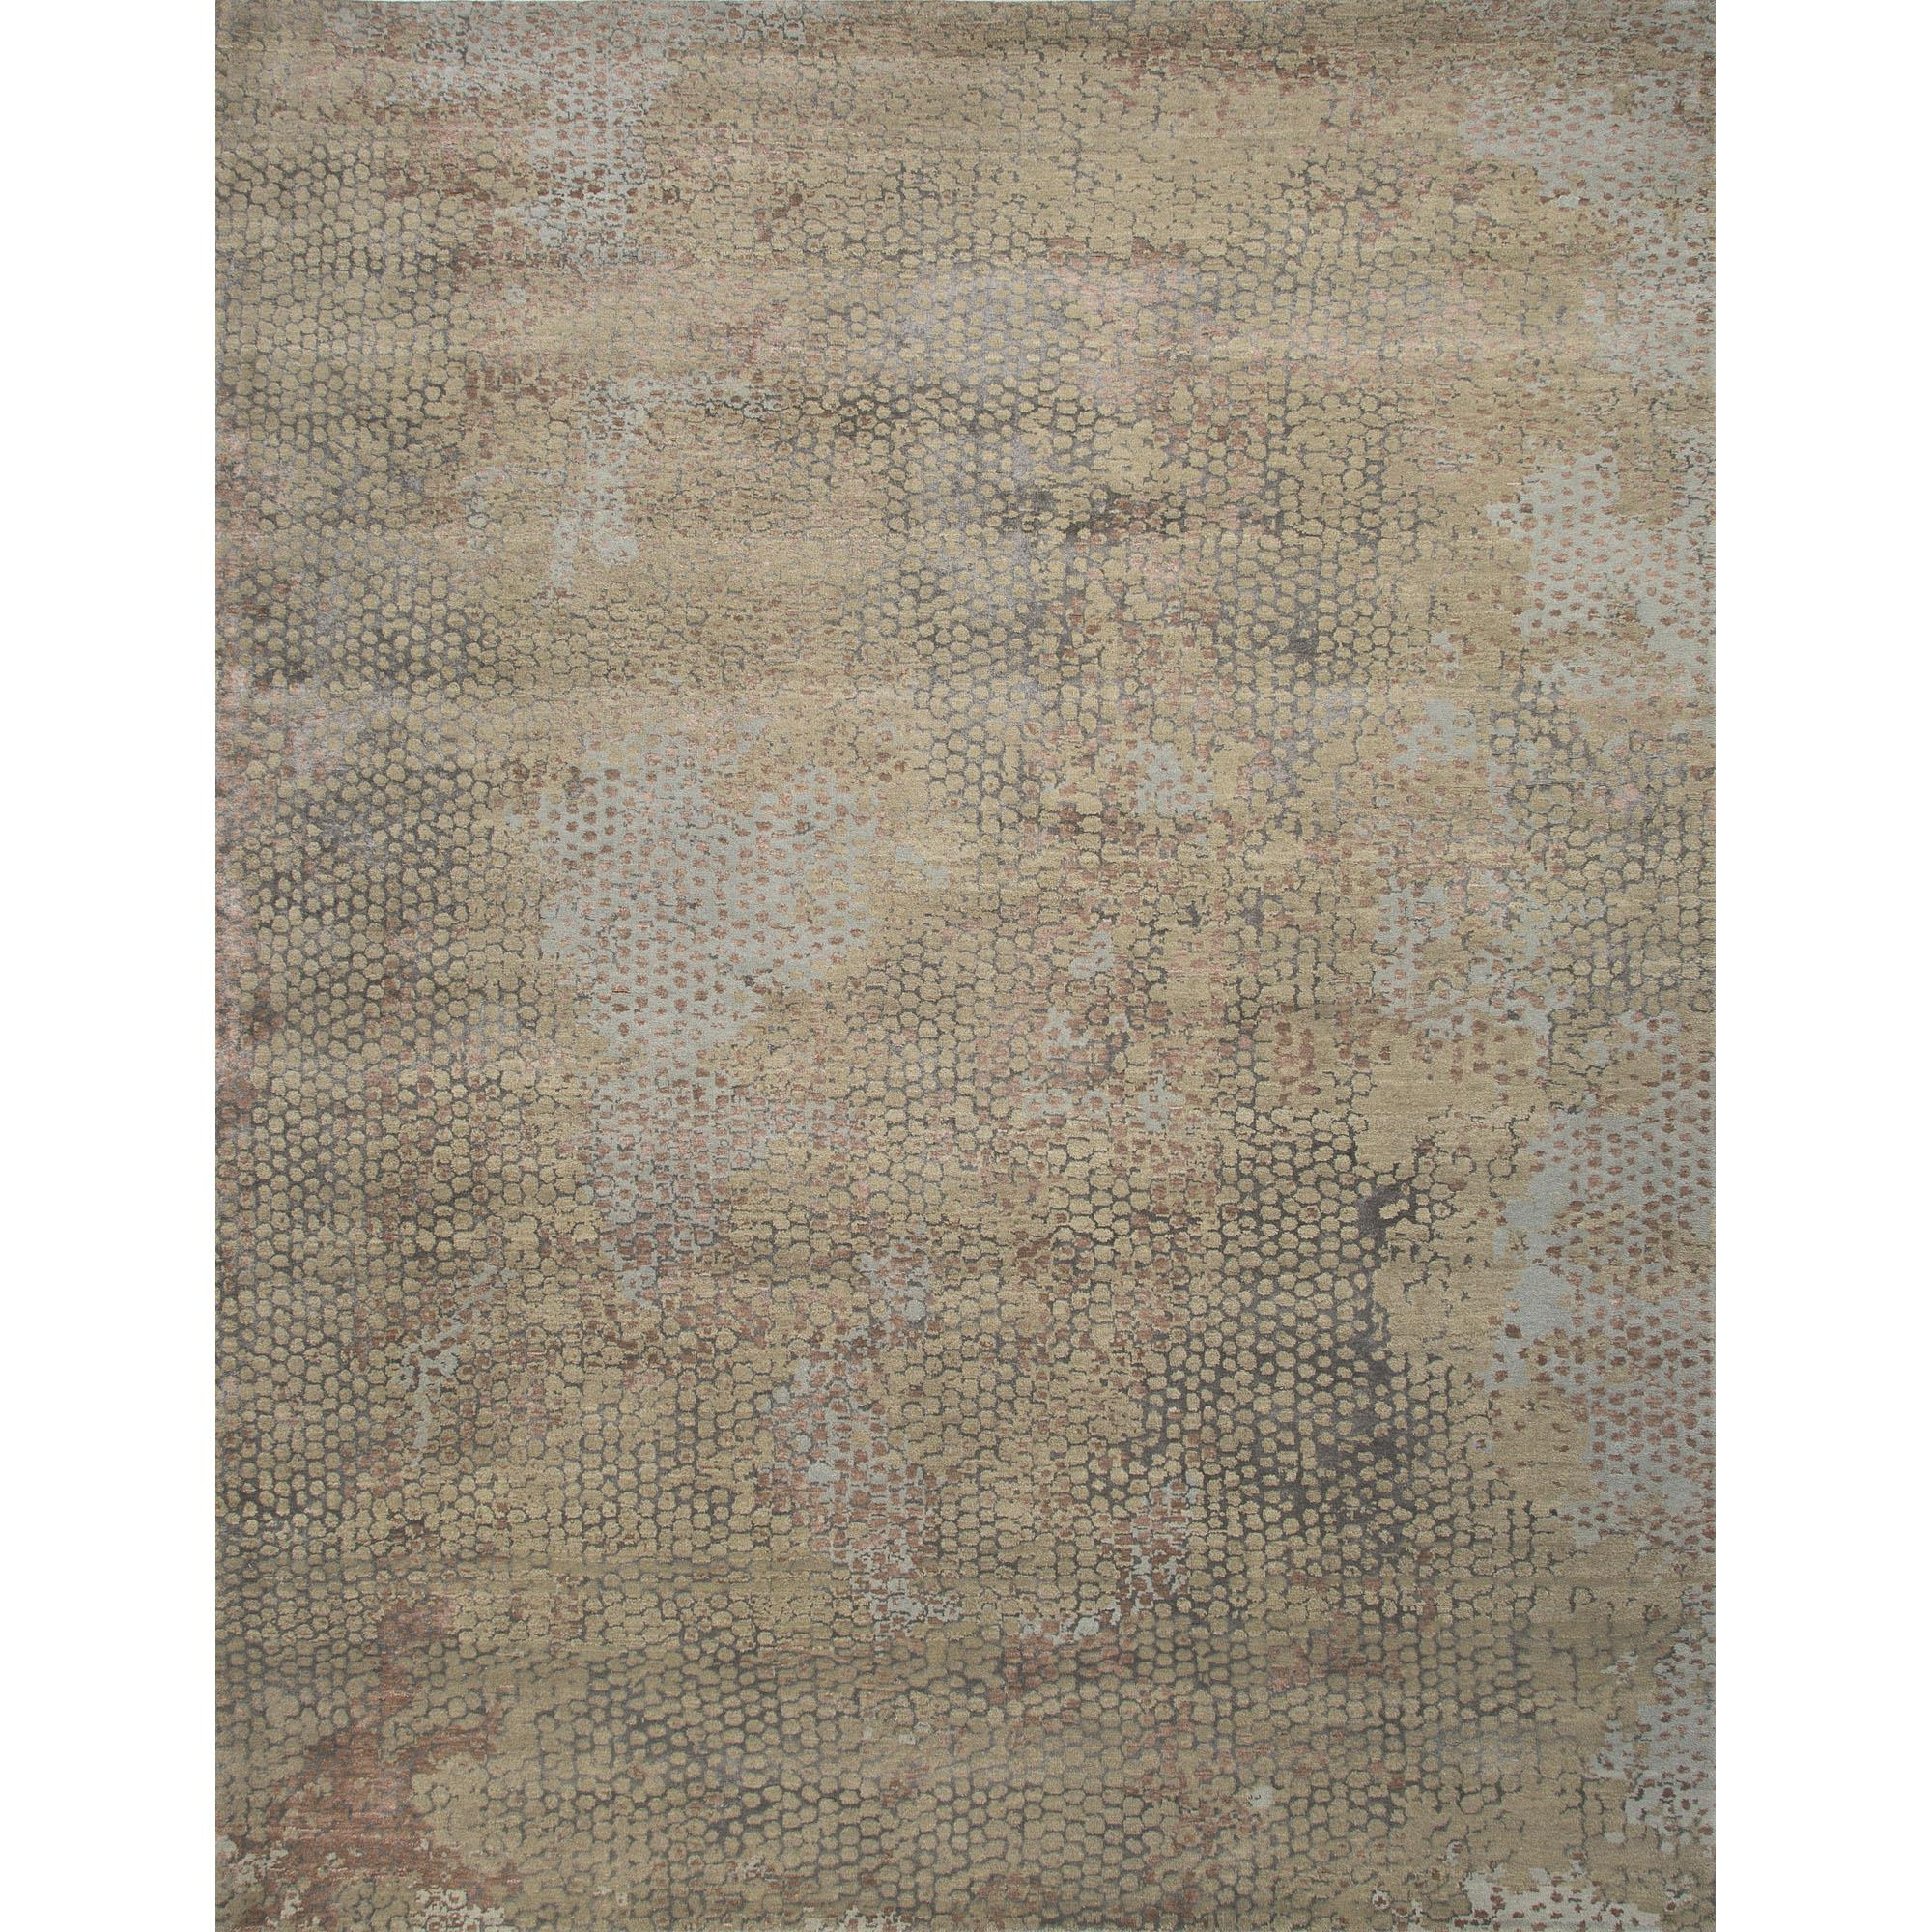 Chaos Theory By Kavi 8 x 10 Rug by JAIPUR Living at Malouf Furniture Co.